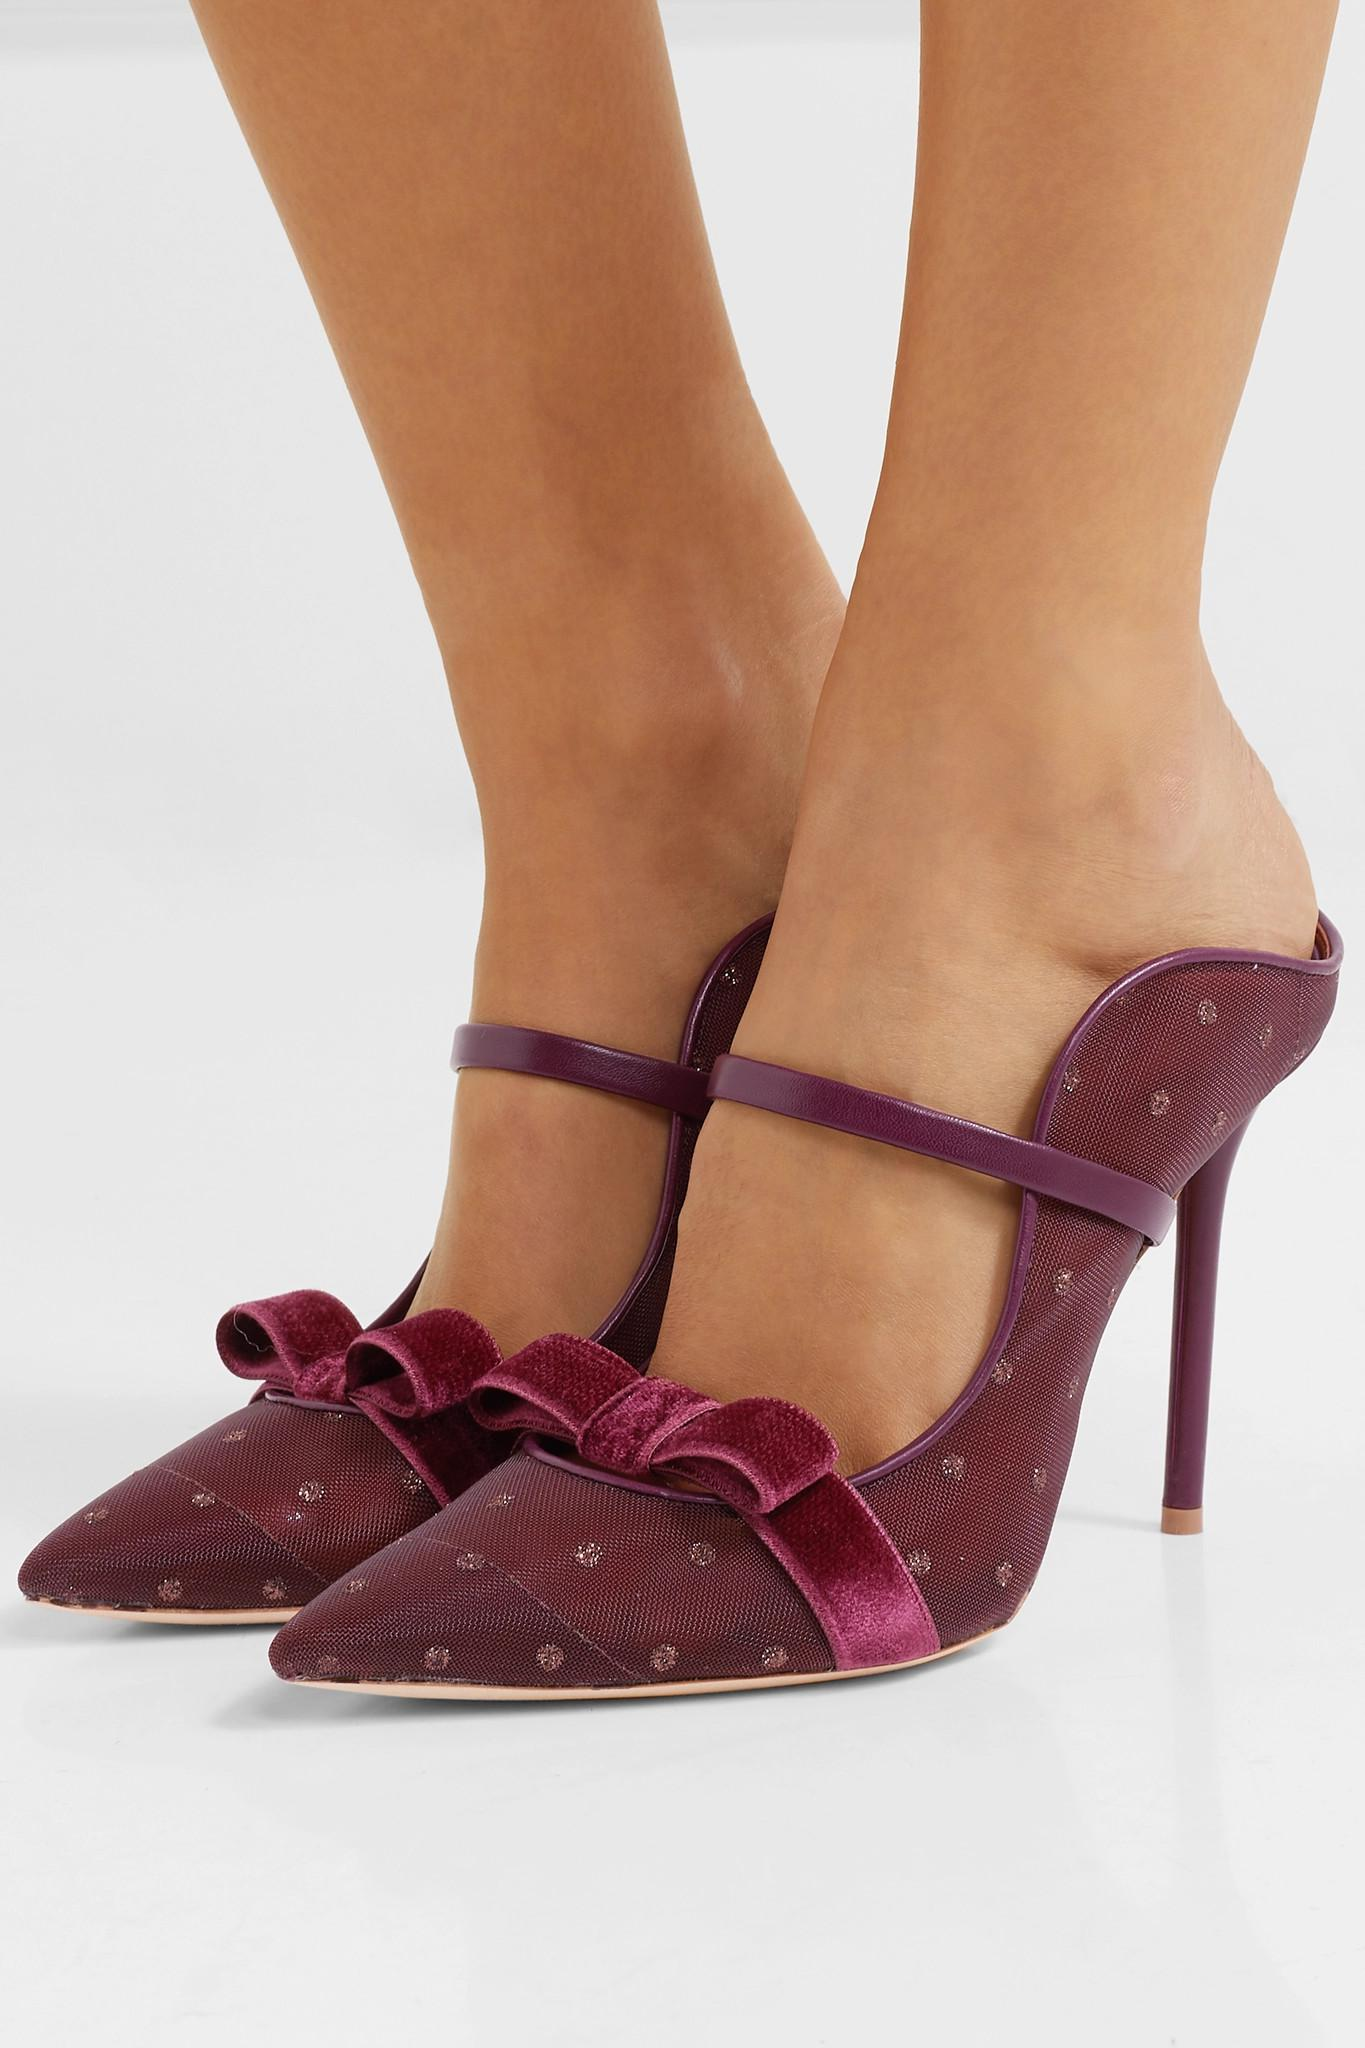 Souliers Trimmed Velvet Lyst And 100 Marguerite Leather Malone p1nx5qwU